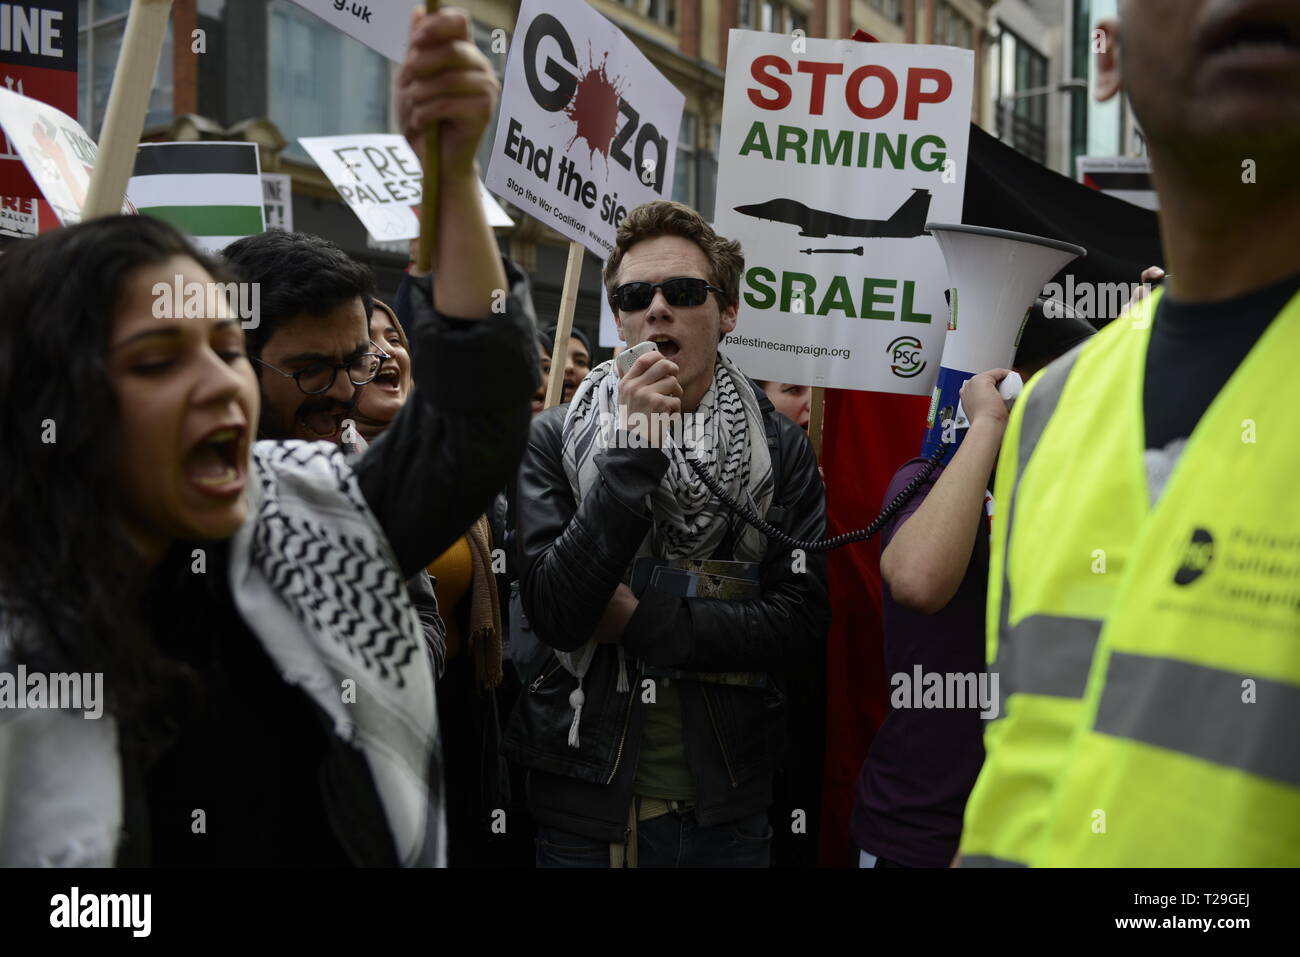 Protester are seen chanting slogans during the Exist, Resist, Return Rally for Palestine in London. People gather outside the Israeli embassy in London to demonstrate against the Israeli government, and to demand respect for Palestinians' fundamental rights to exist, resist and return. Palestinians are calling for global protests to support their right to come back to their villages. Rally was organized by Palestine Solidarity Campaign, Stop the War Coalition, Palestinian Forum in Britain, Friends of Al- Aqsa, and Muslim Association of Britain. - Stock Image